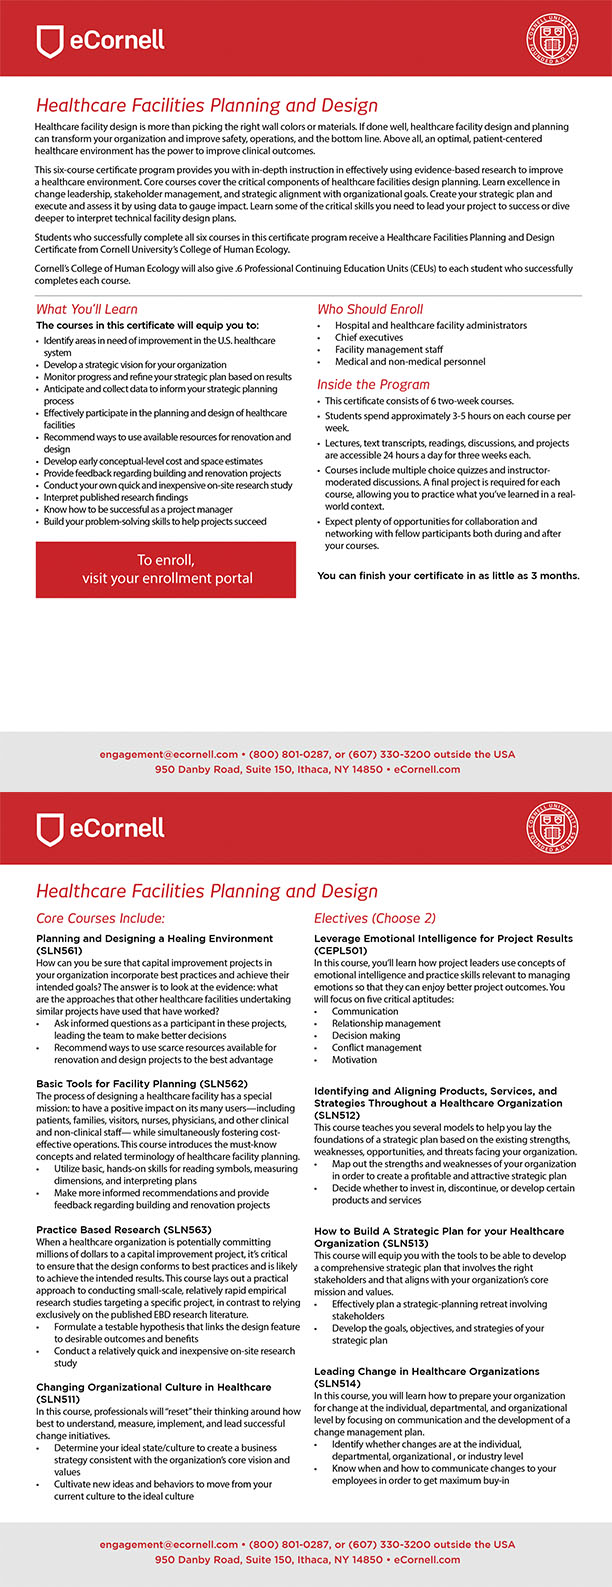 Healthcare Facilities Planning and Design Flyer for Corporations